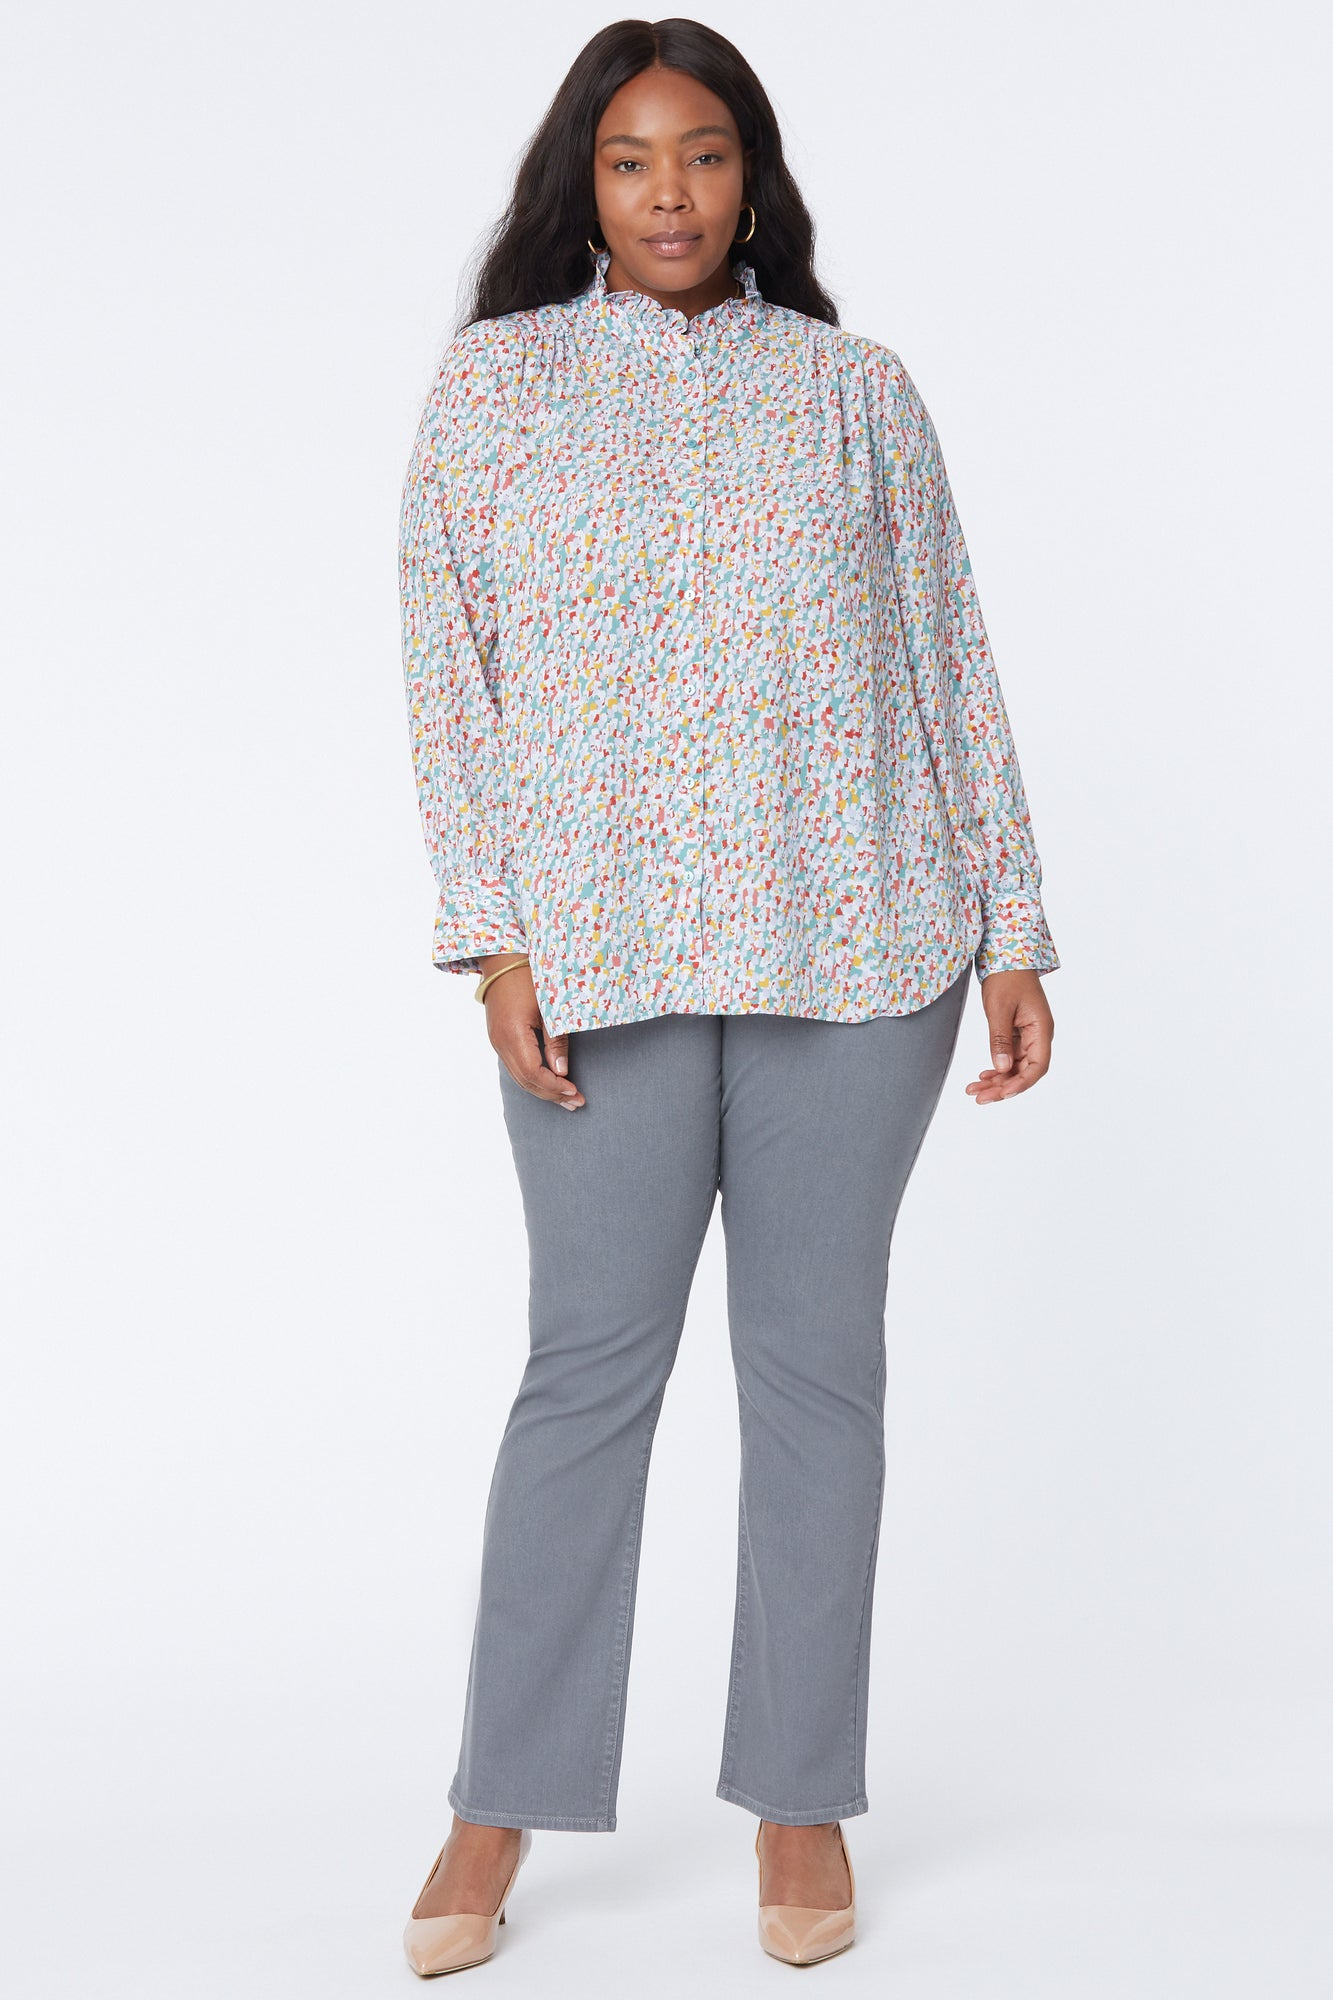 Ruffle Neck Blouse In Plus Size - CANYON GEO